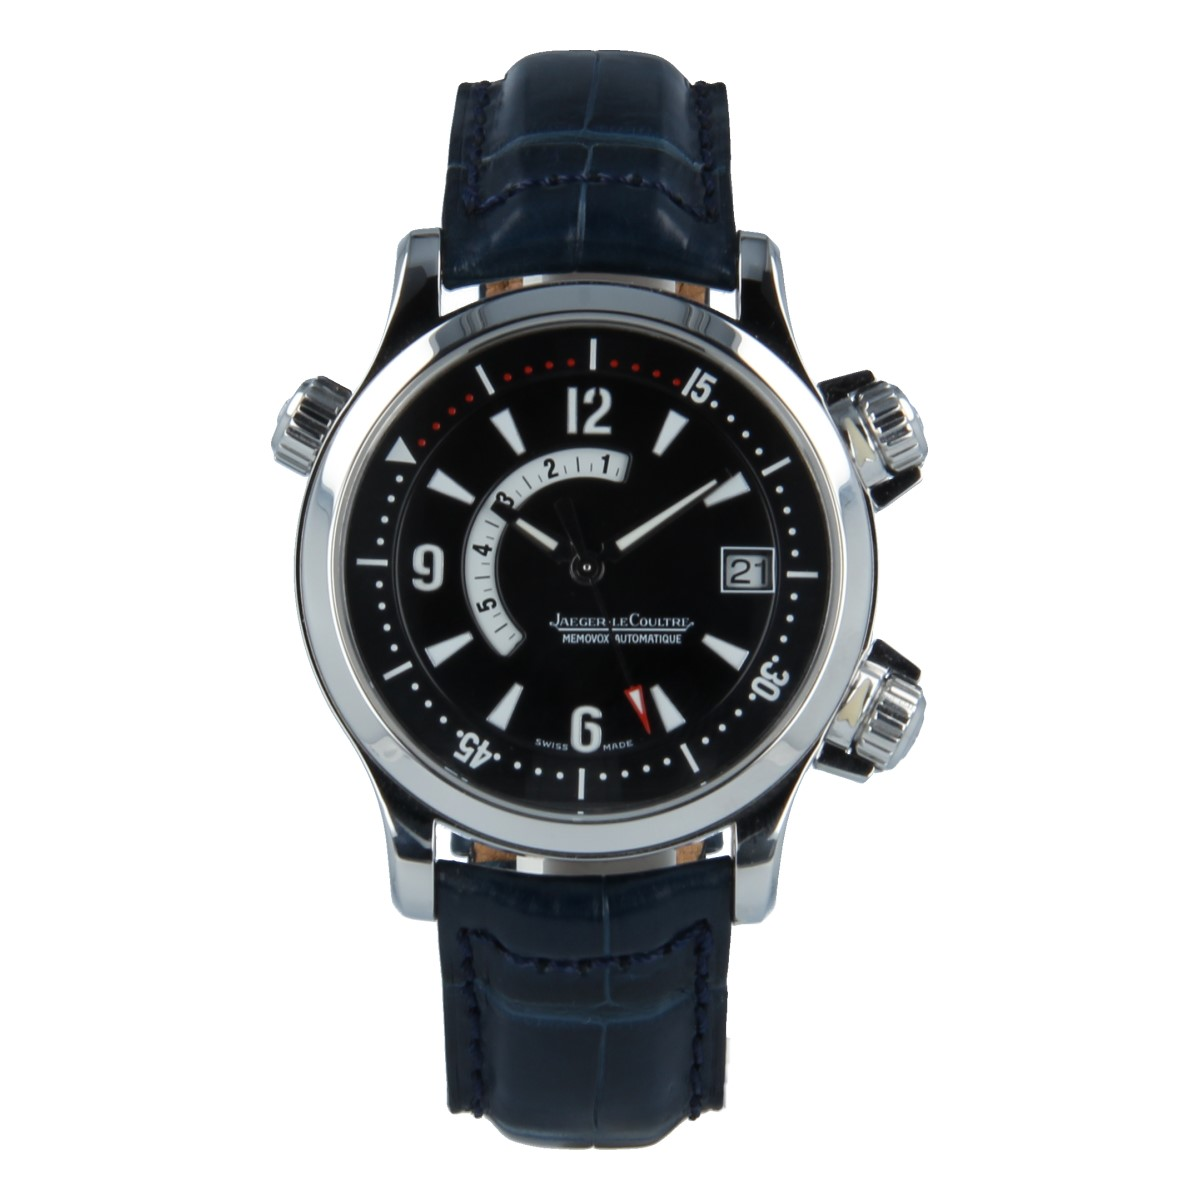 Jaeger-LeCoultre Master Compressor Memovox Alarm | Buy pre-owned Jaeger-LeCoultre watch